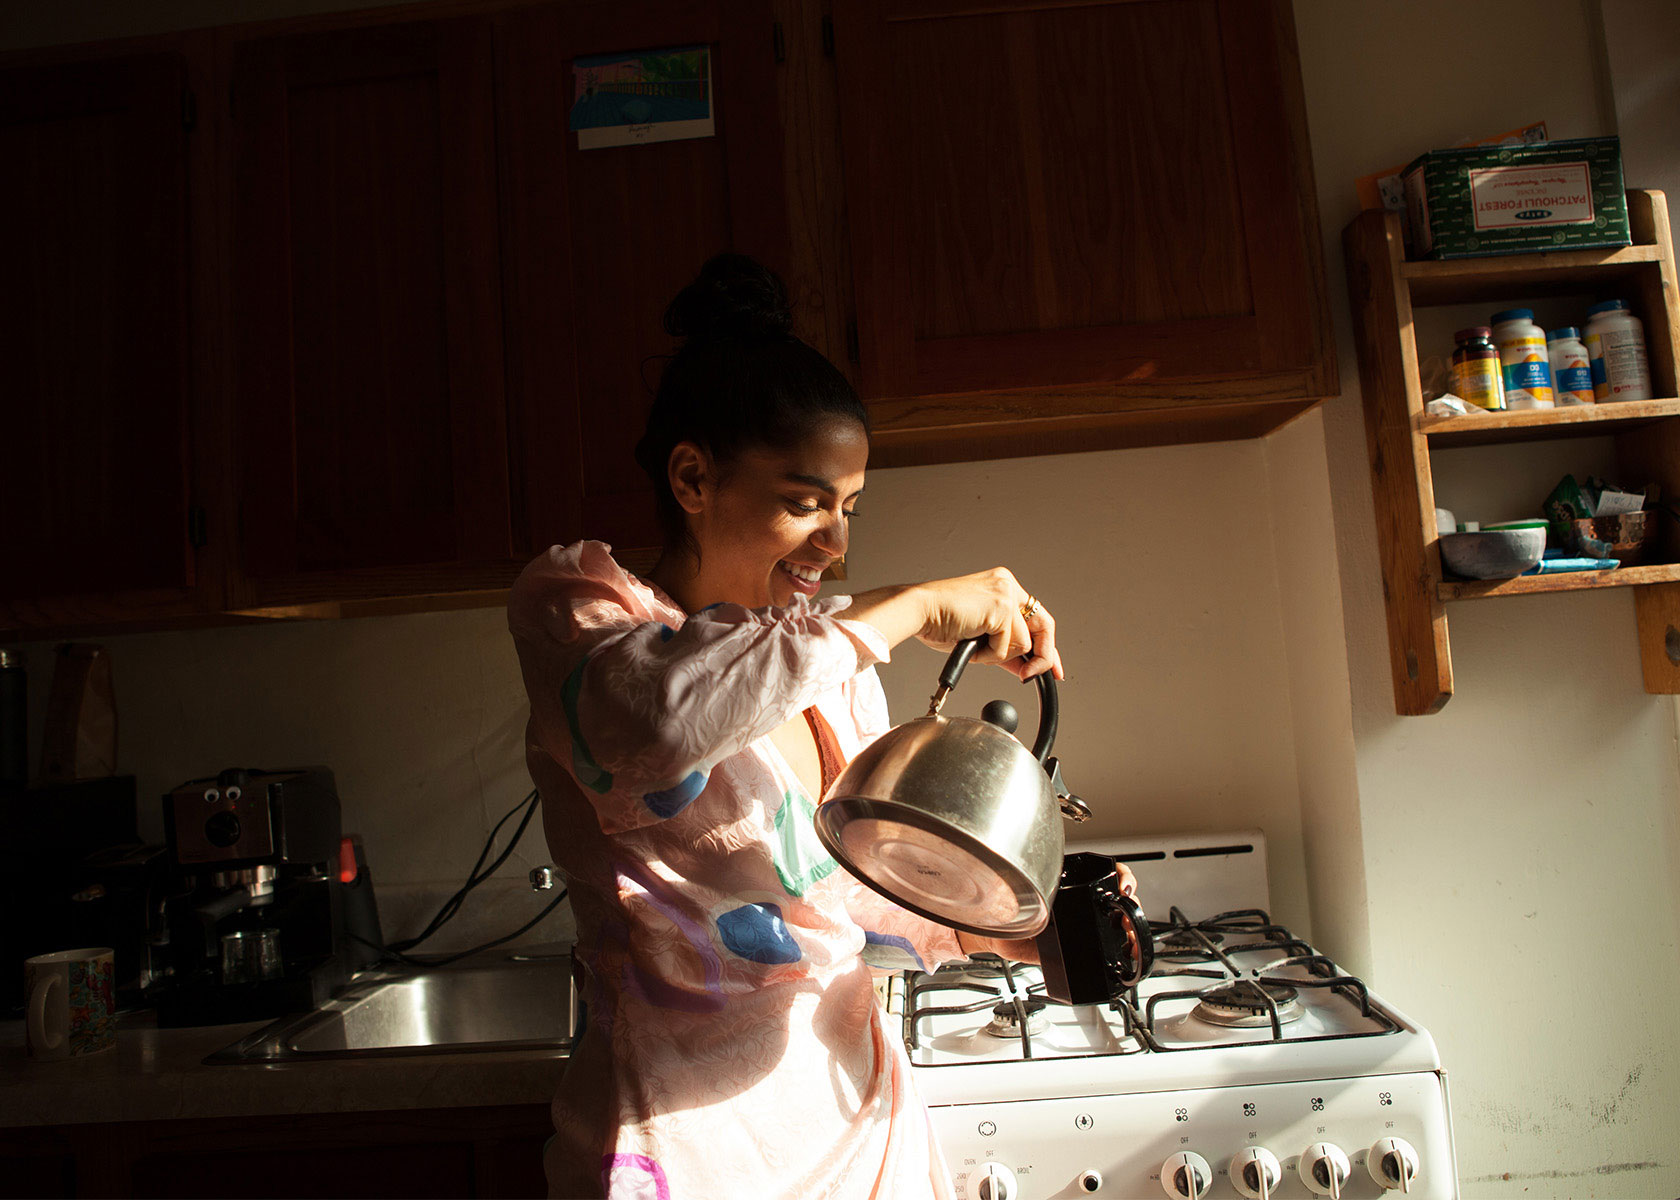 Mona Chalabi takes a tea break in her home kitchen.